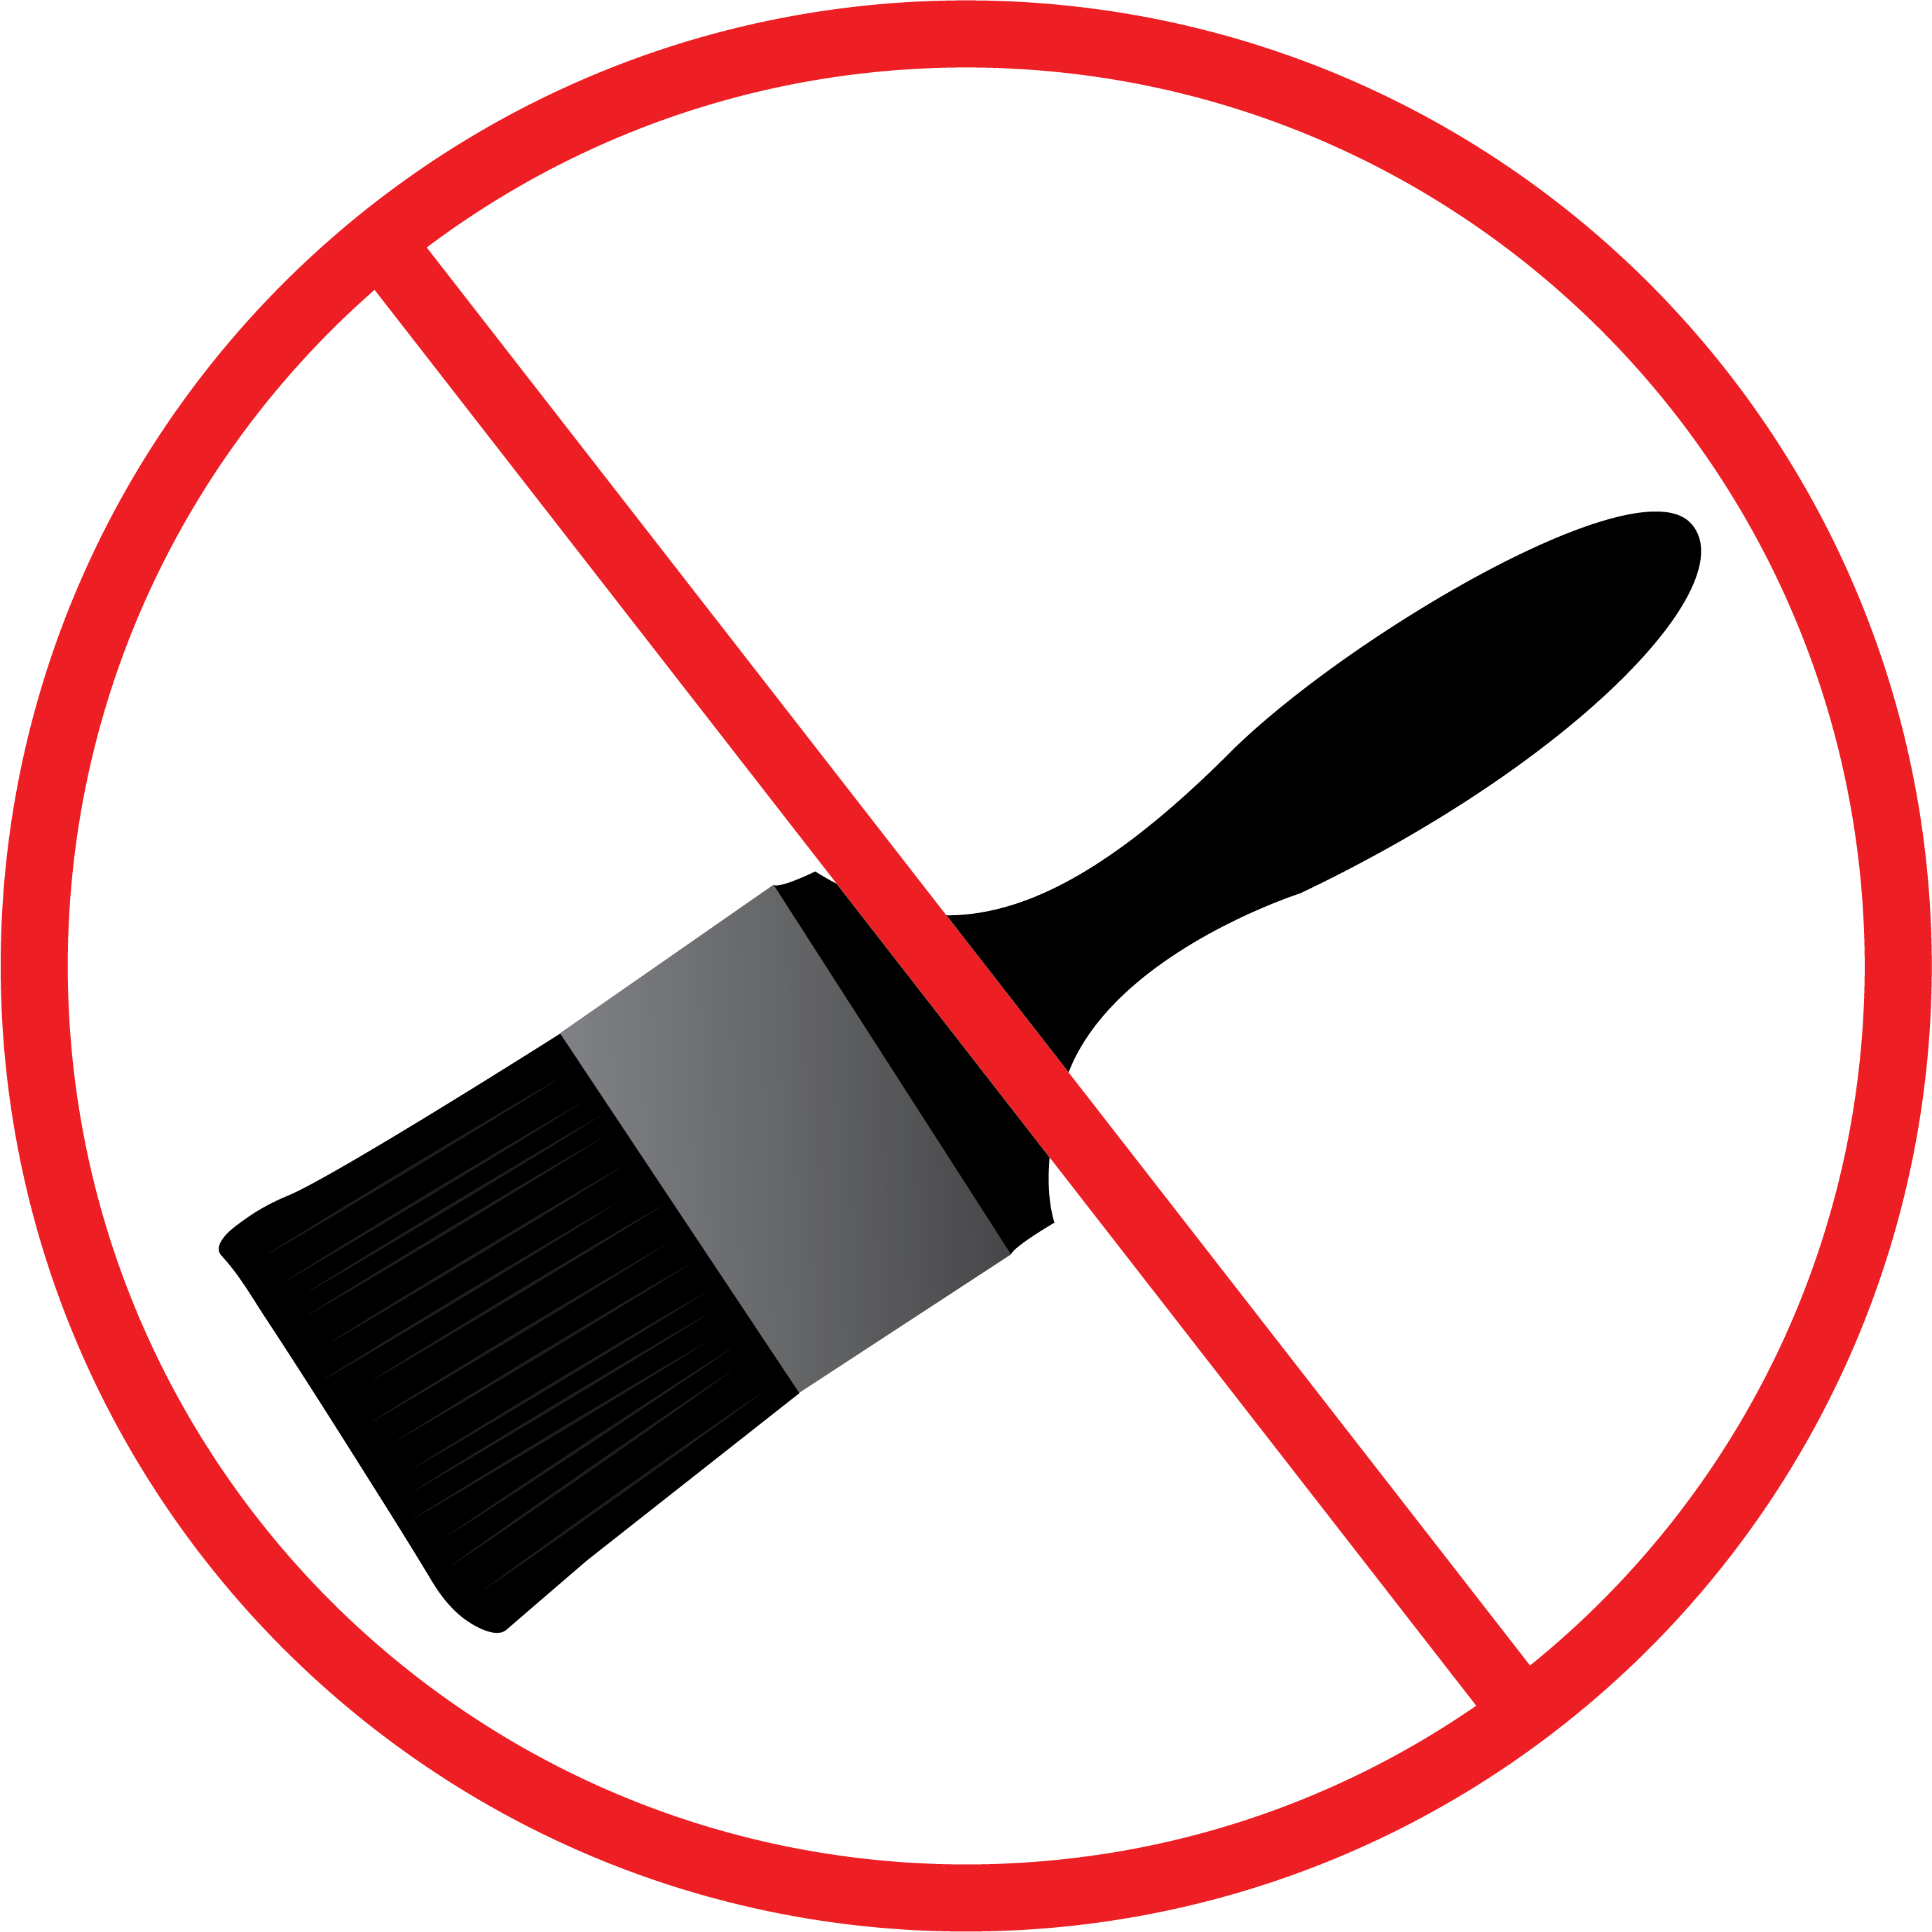 Illustration of paintbrush with a red cross out circle to indicate home owners should not paint transformers.